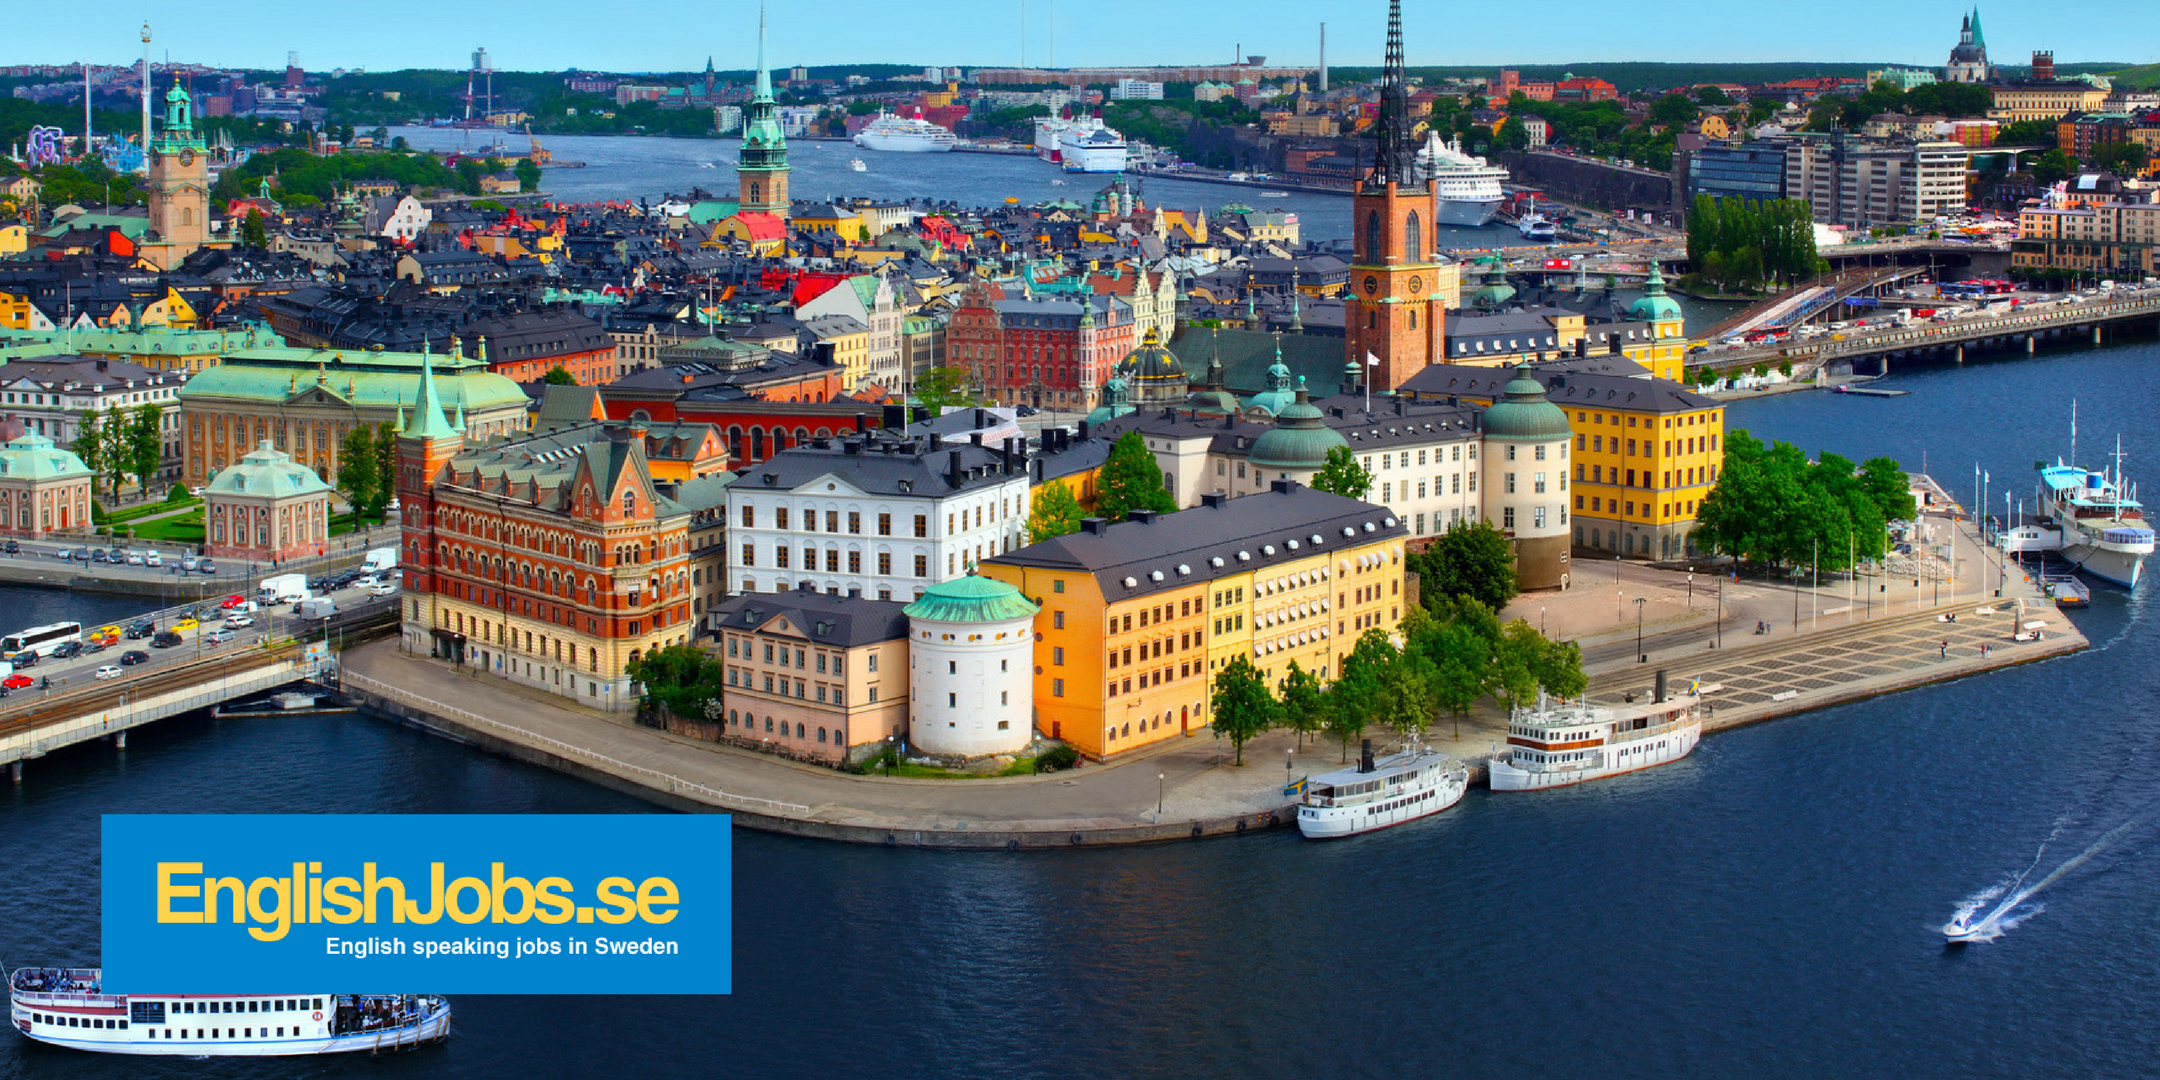 Work in Europe (Sweden, Denmark, Germany) - Your job search from Houston to Stockholm